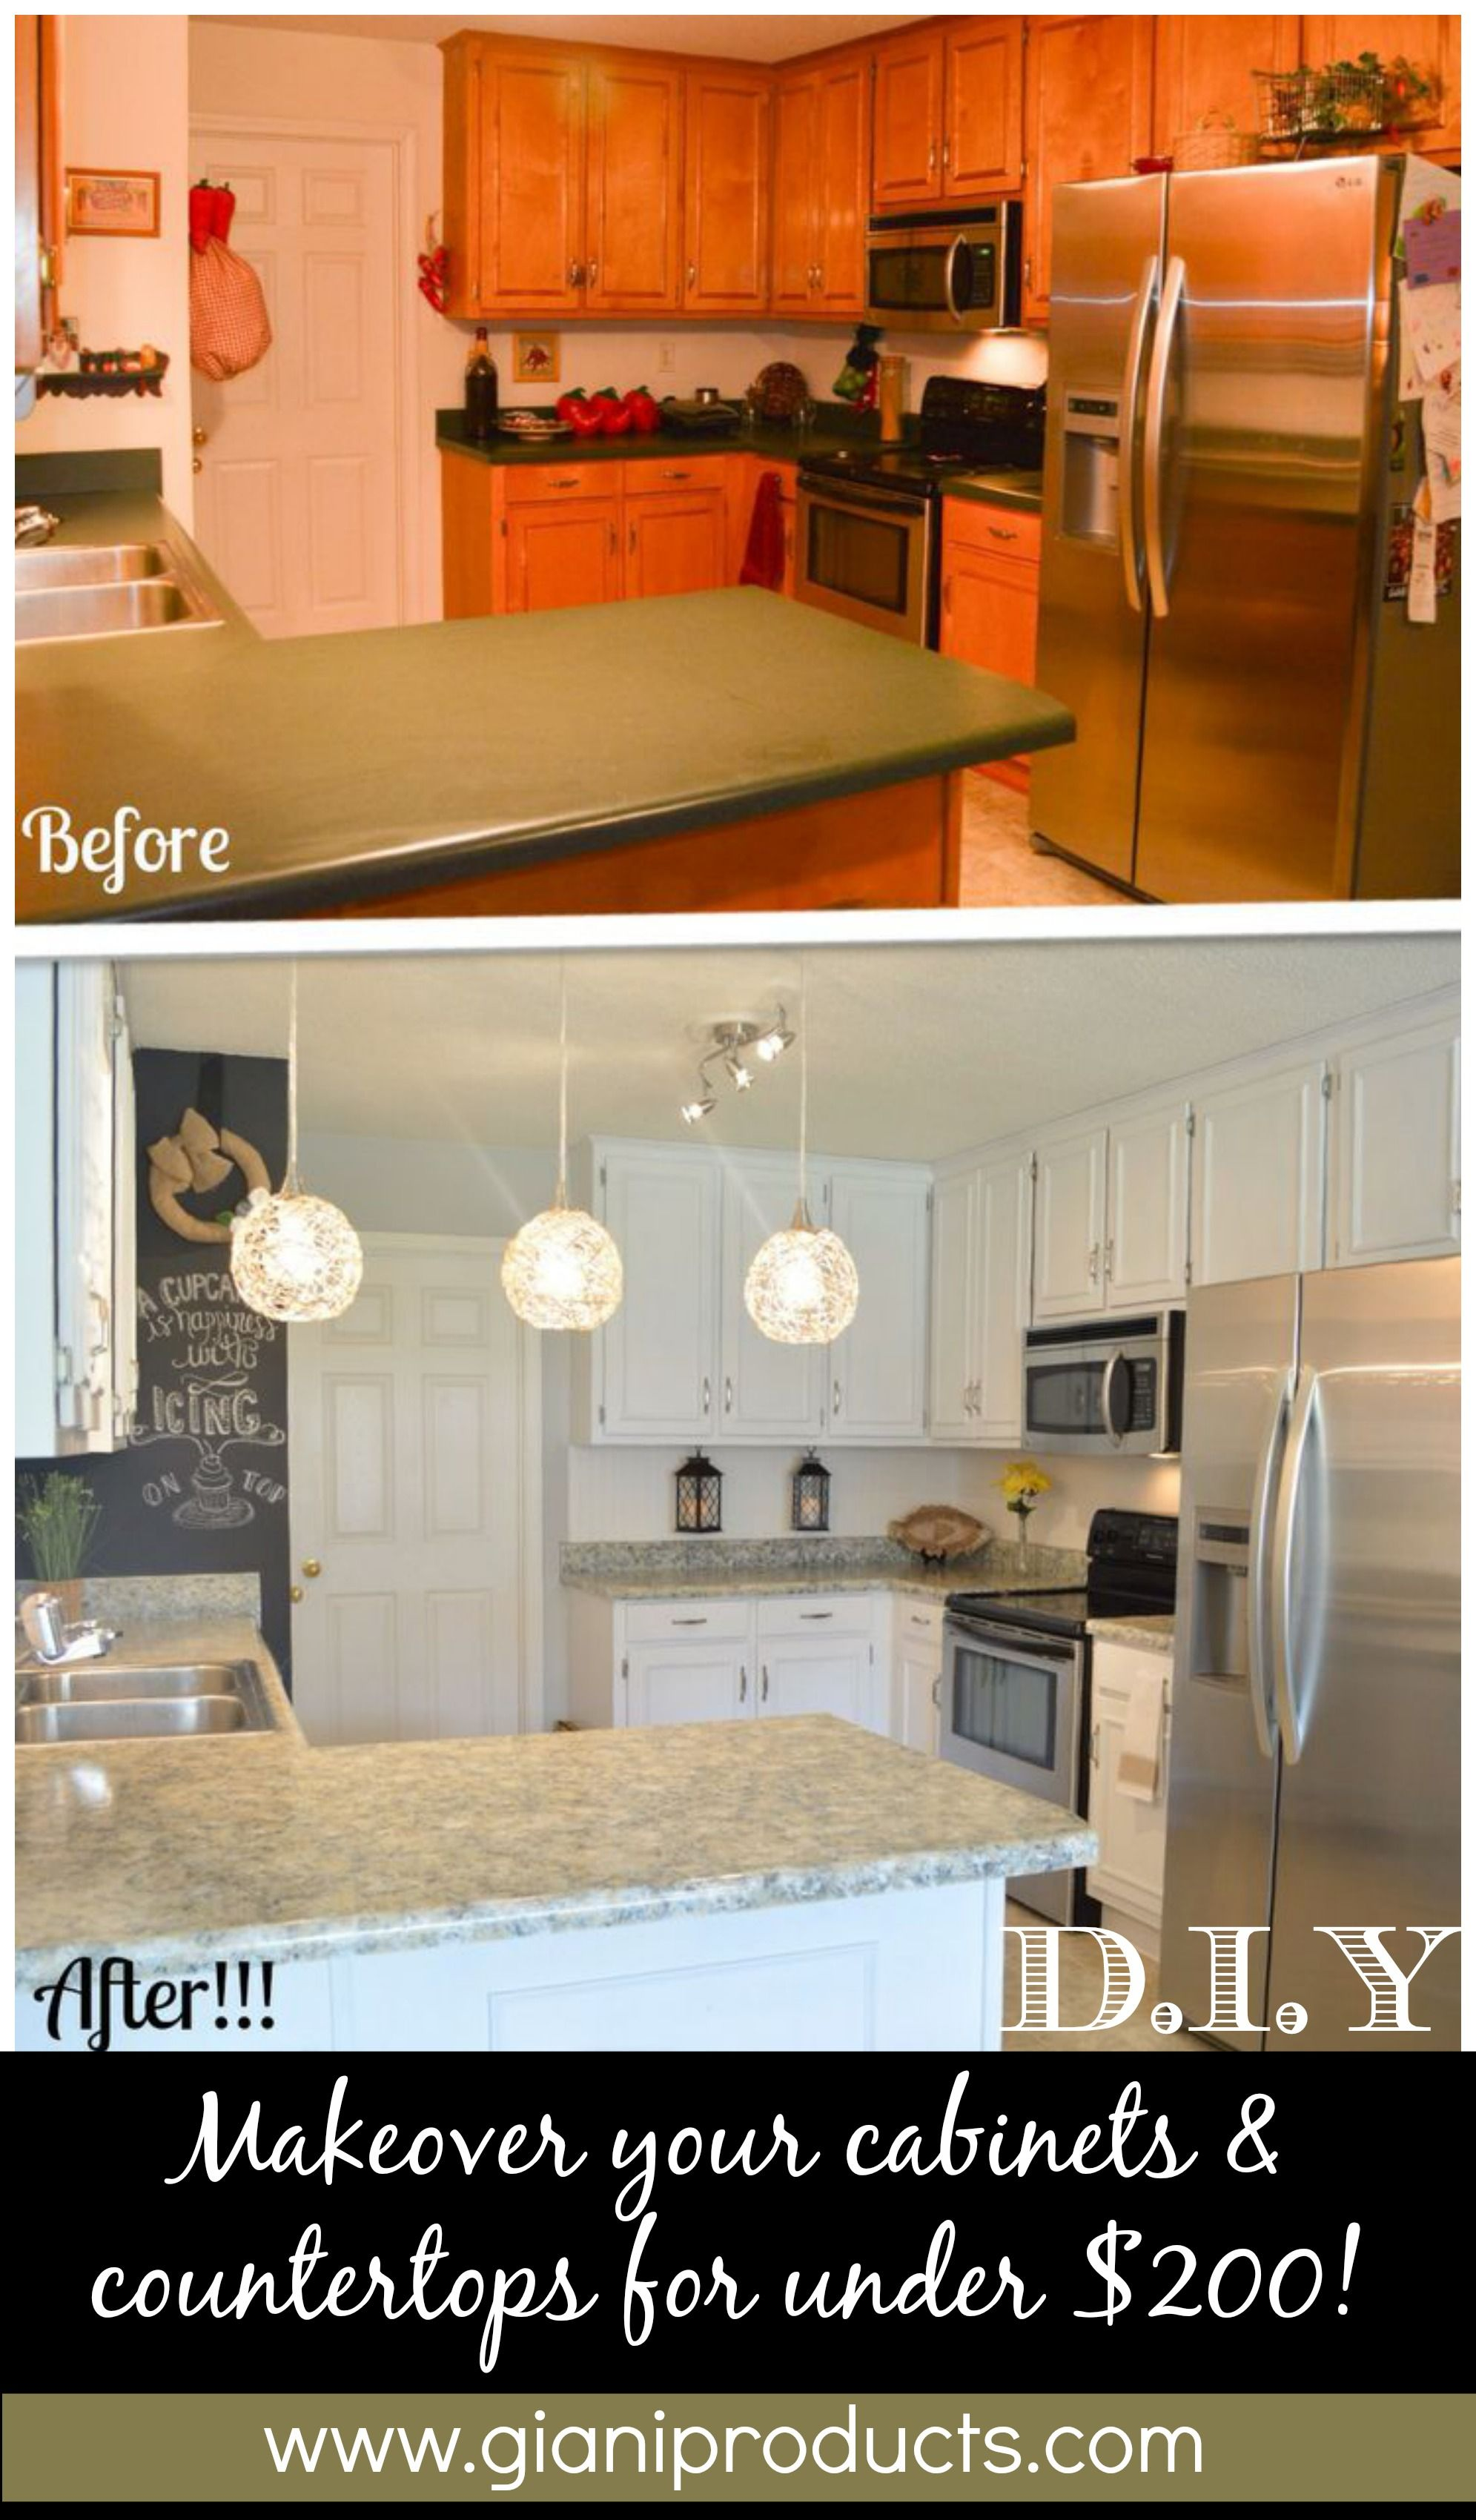 Kitchen Update On A Budget Diy Paint Kits To Revamp Countertops And